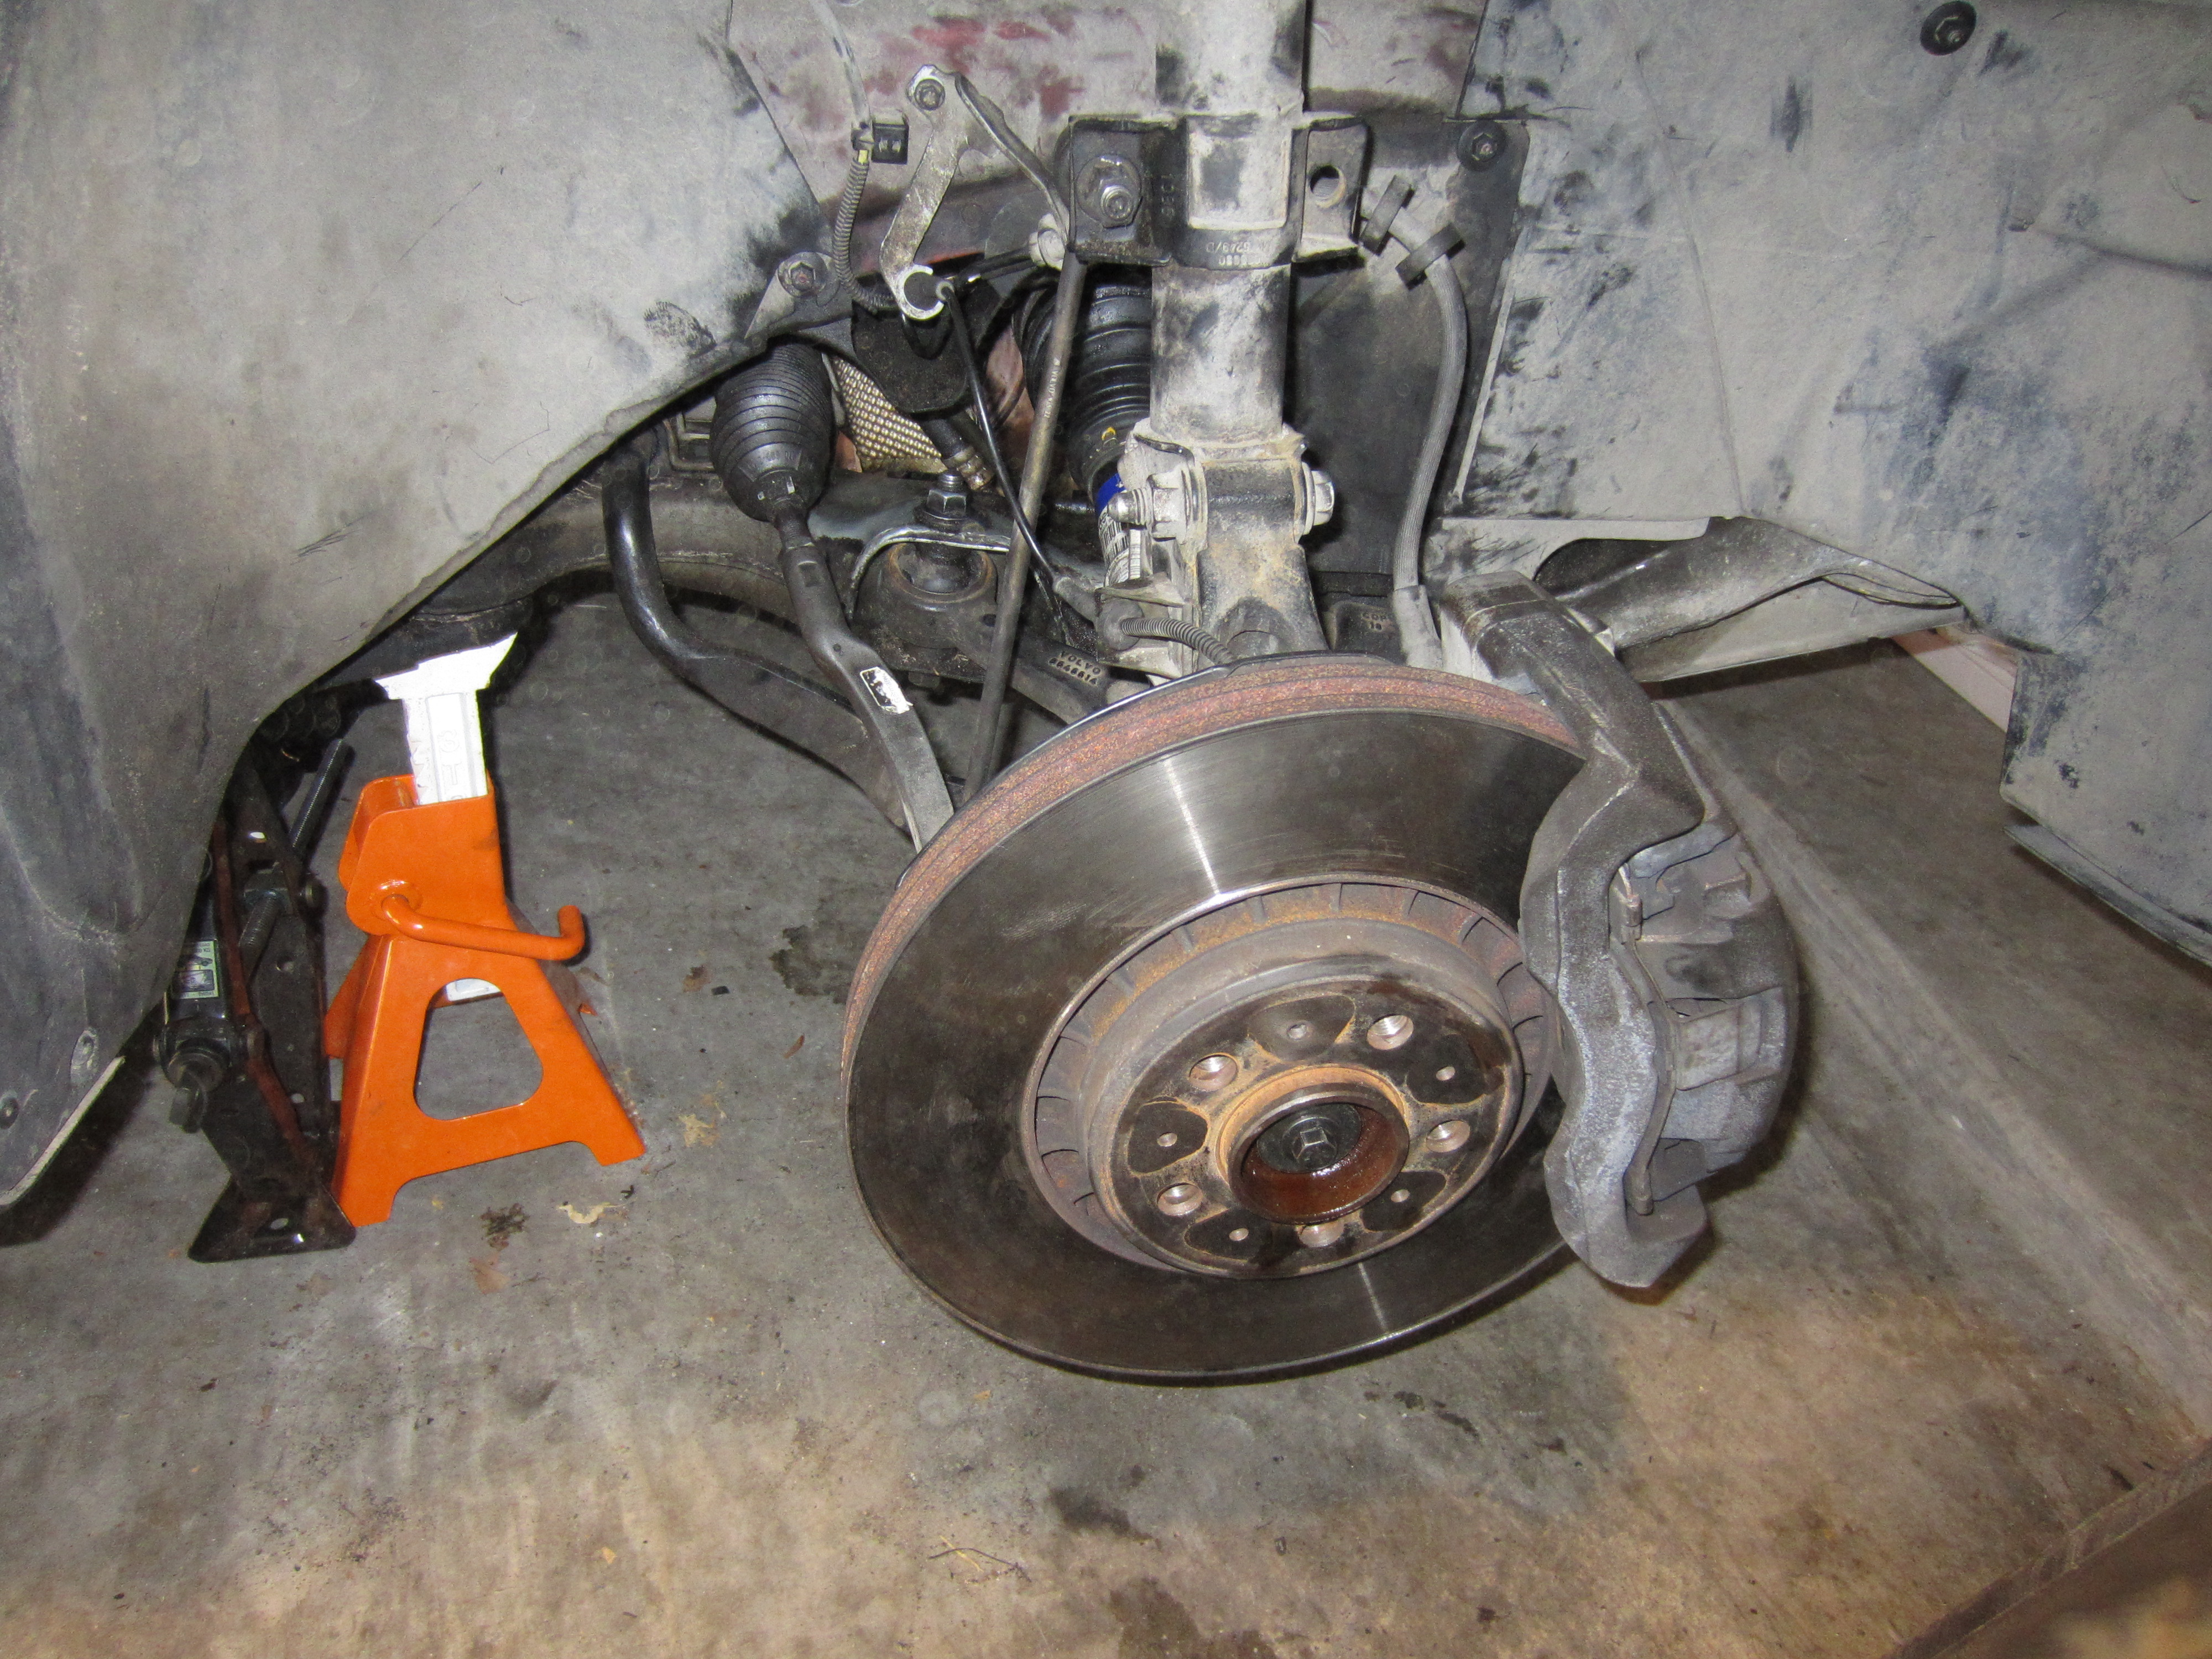 Swedespeed Forums - Tutorial: XC90 V8 - Replacing the alternator